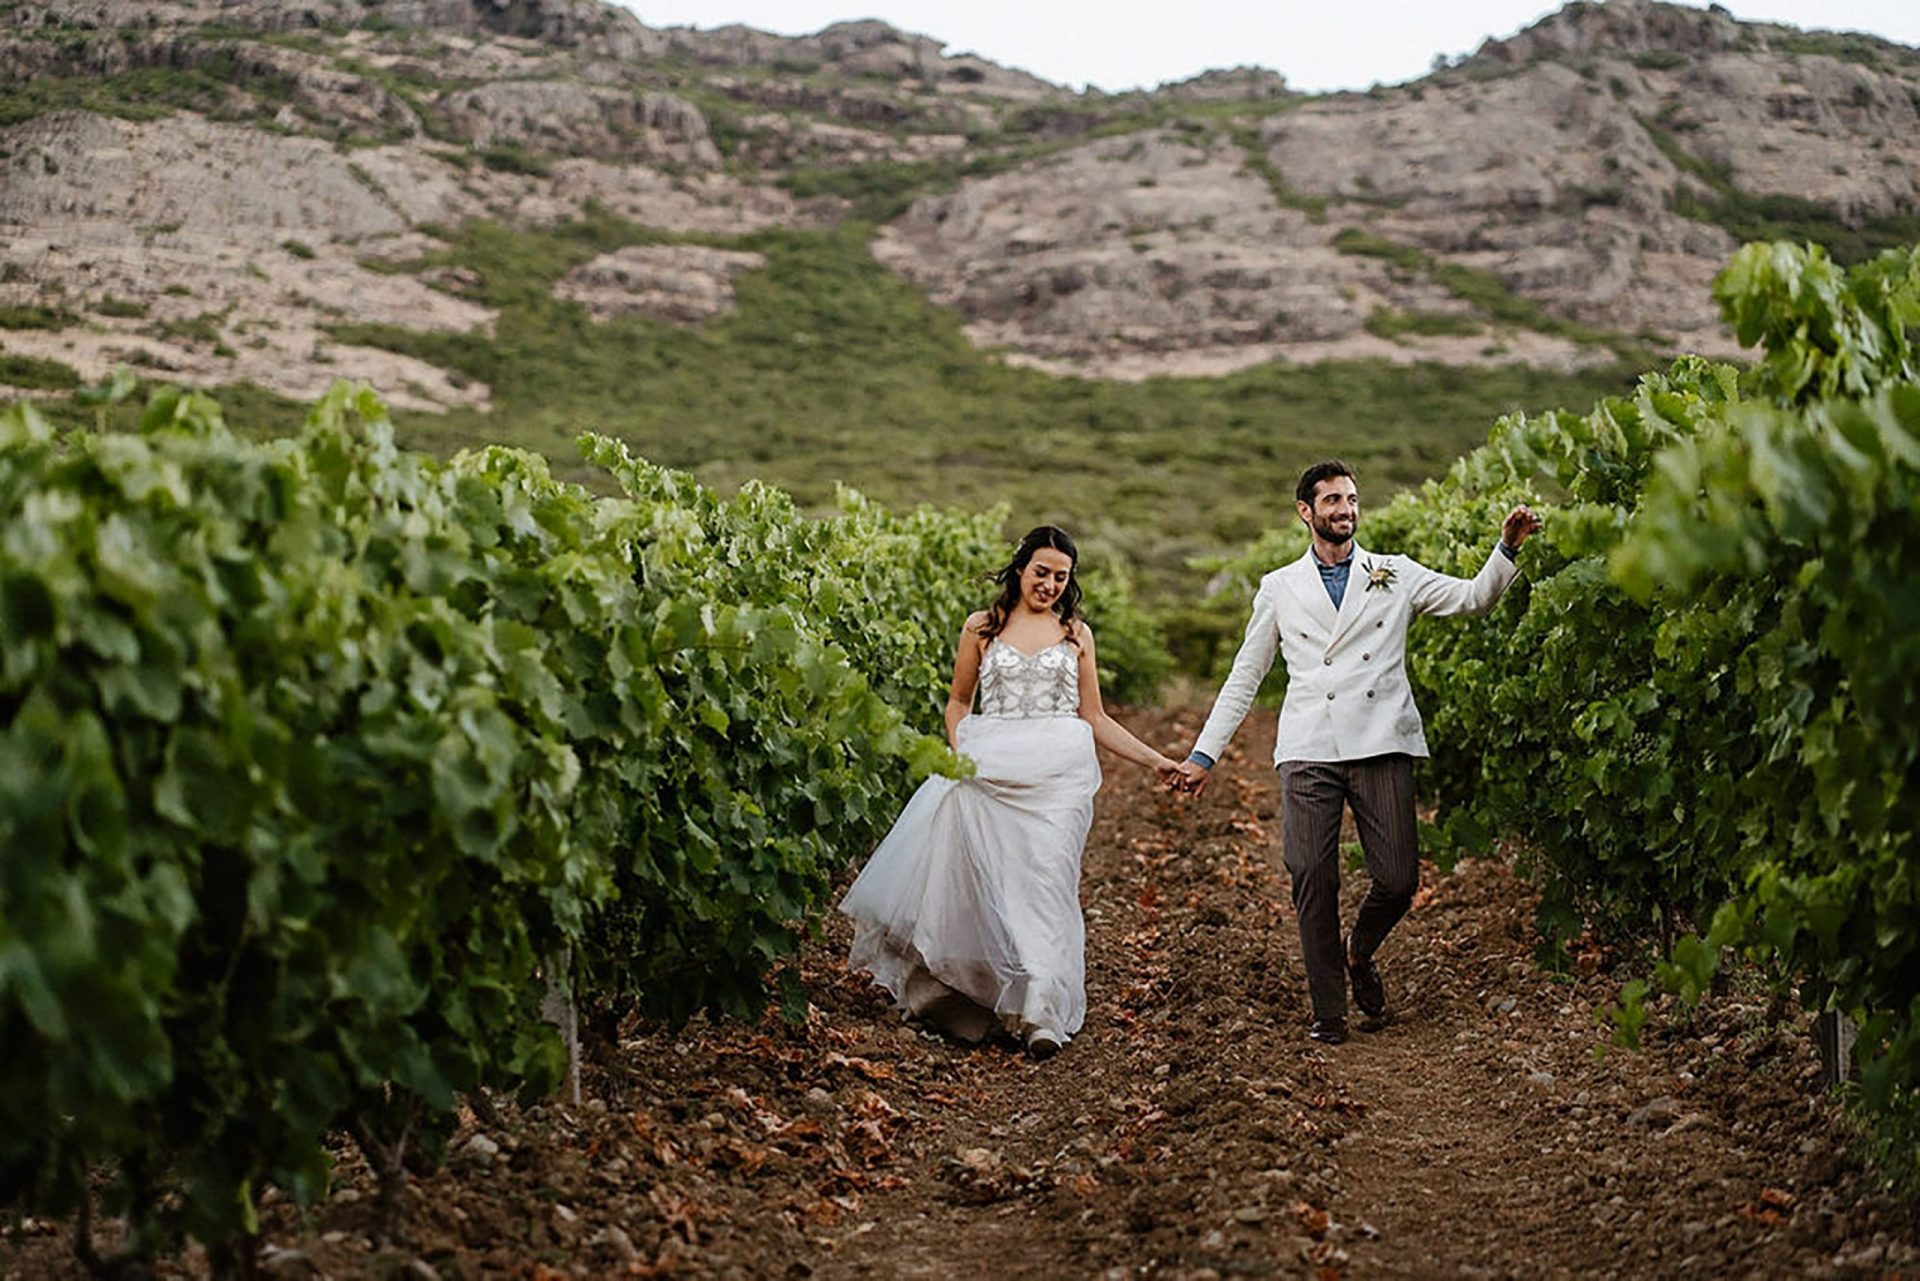 Marianna & Matteo, the bride and the groom in the vineyard